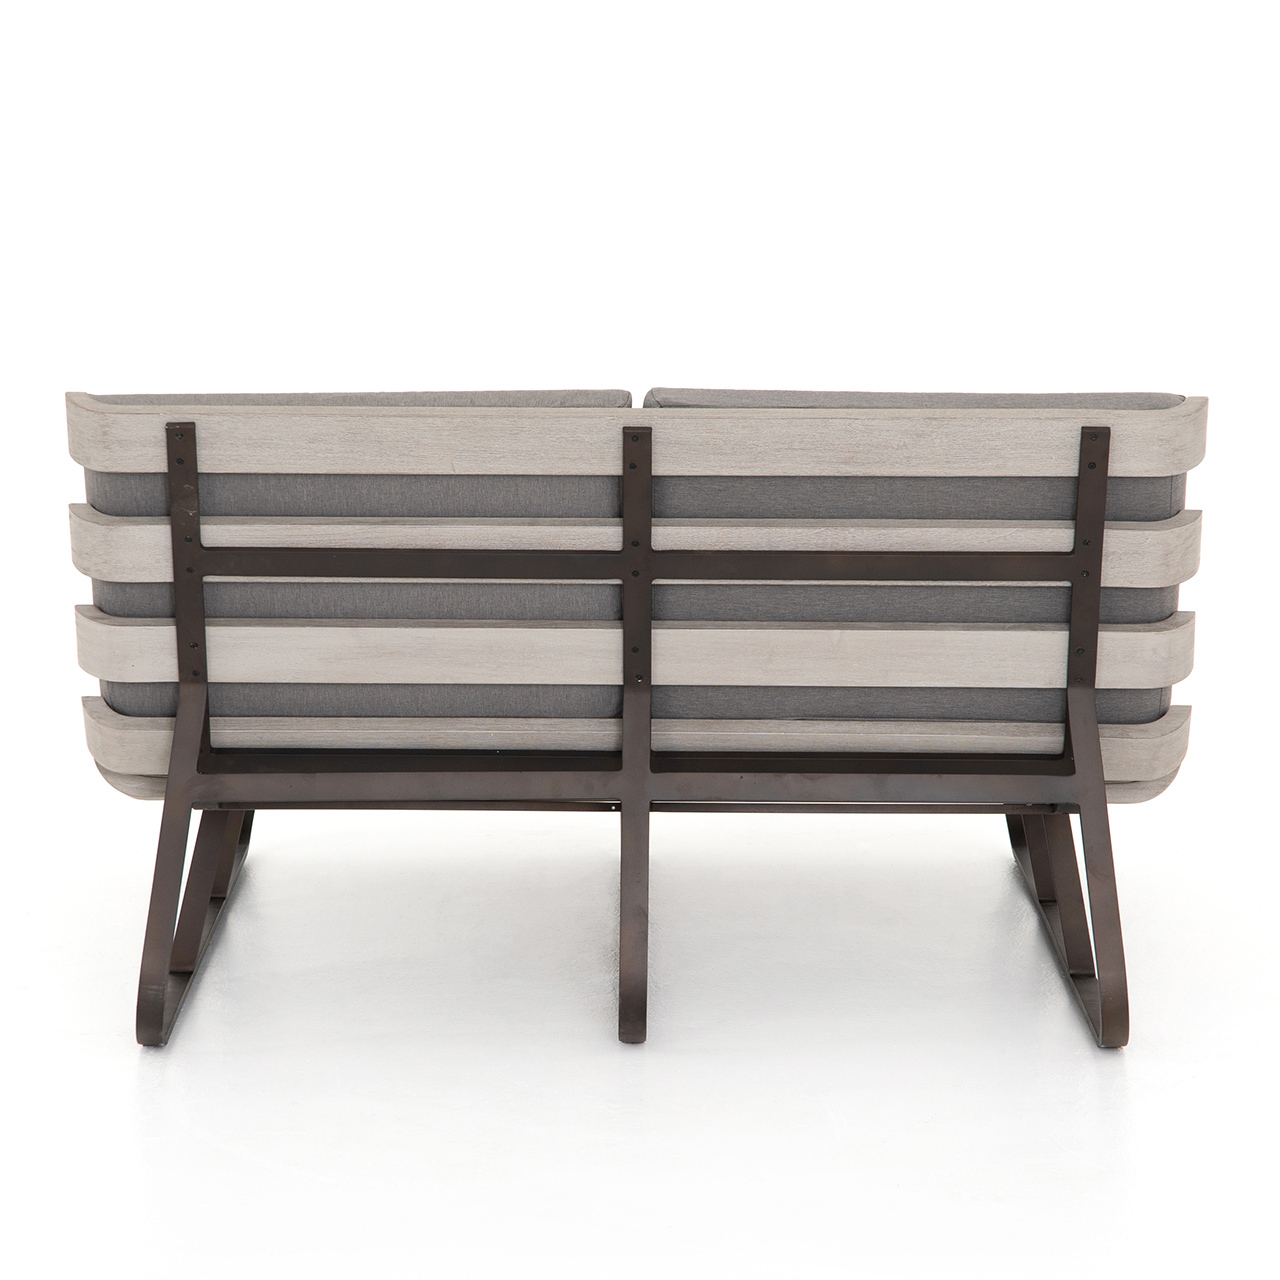 Laguna Outdoor Double Chaise